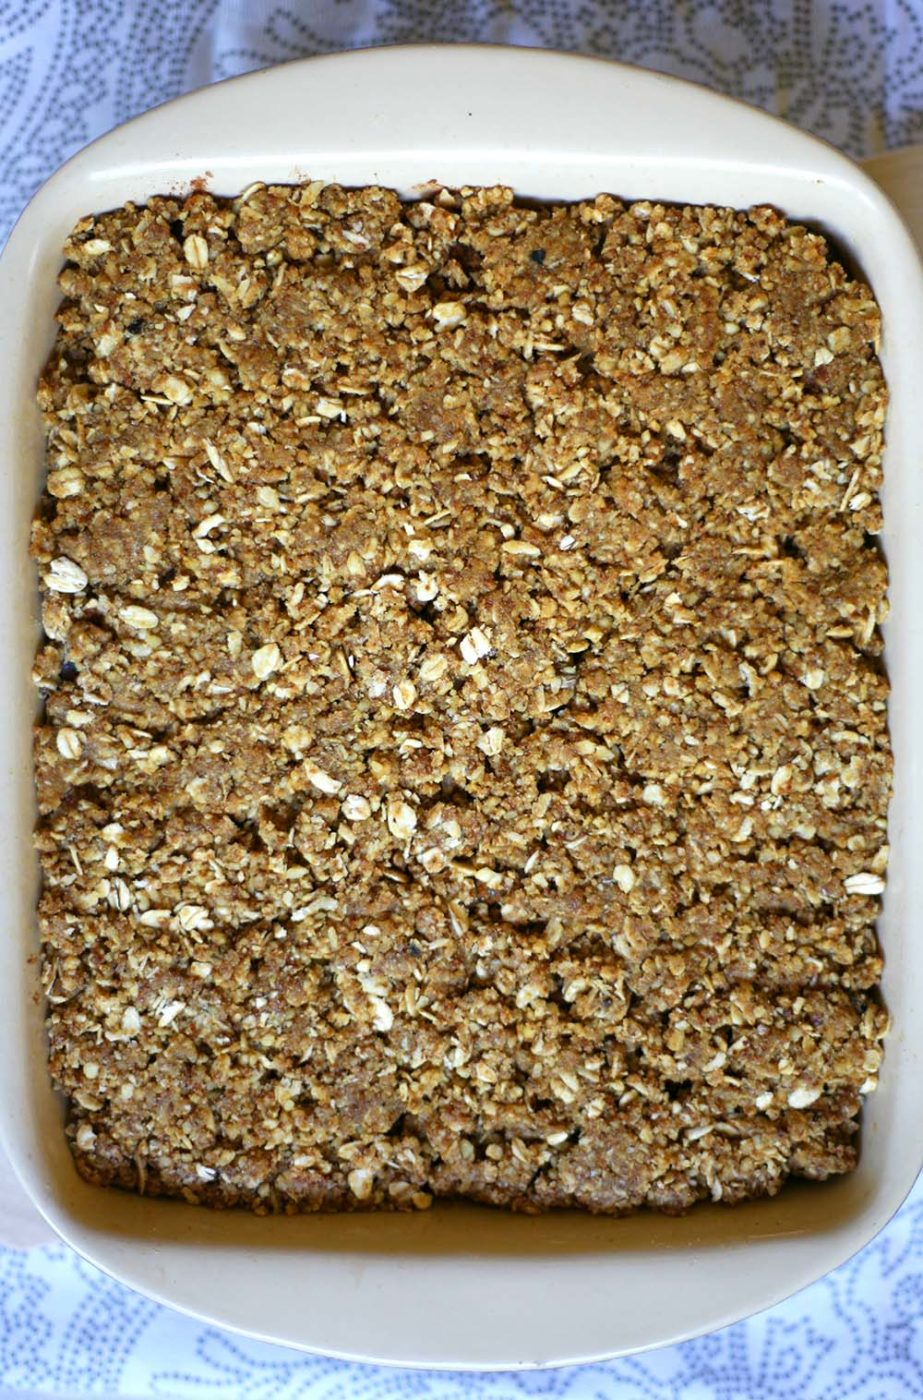 A baking dish with brown crunchy crumble topping nicely flattened into the dish on one layer.